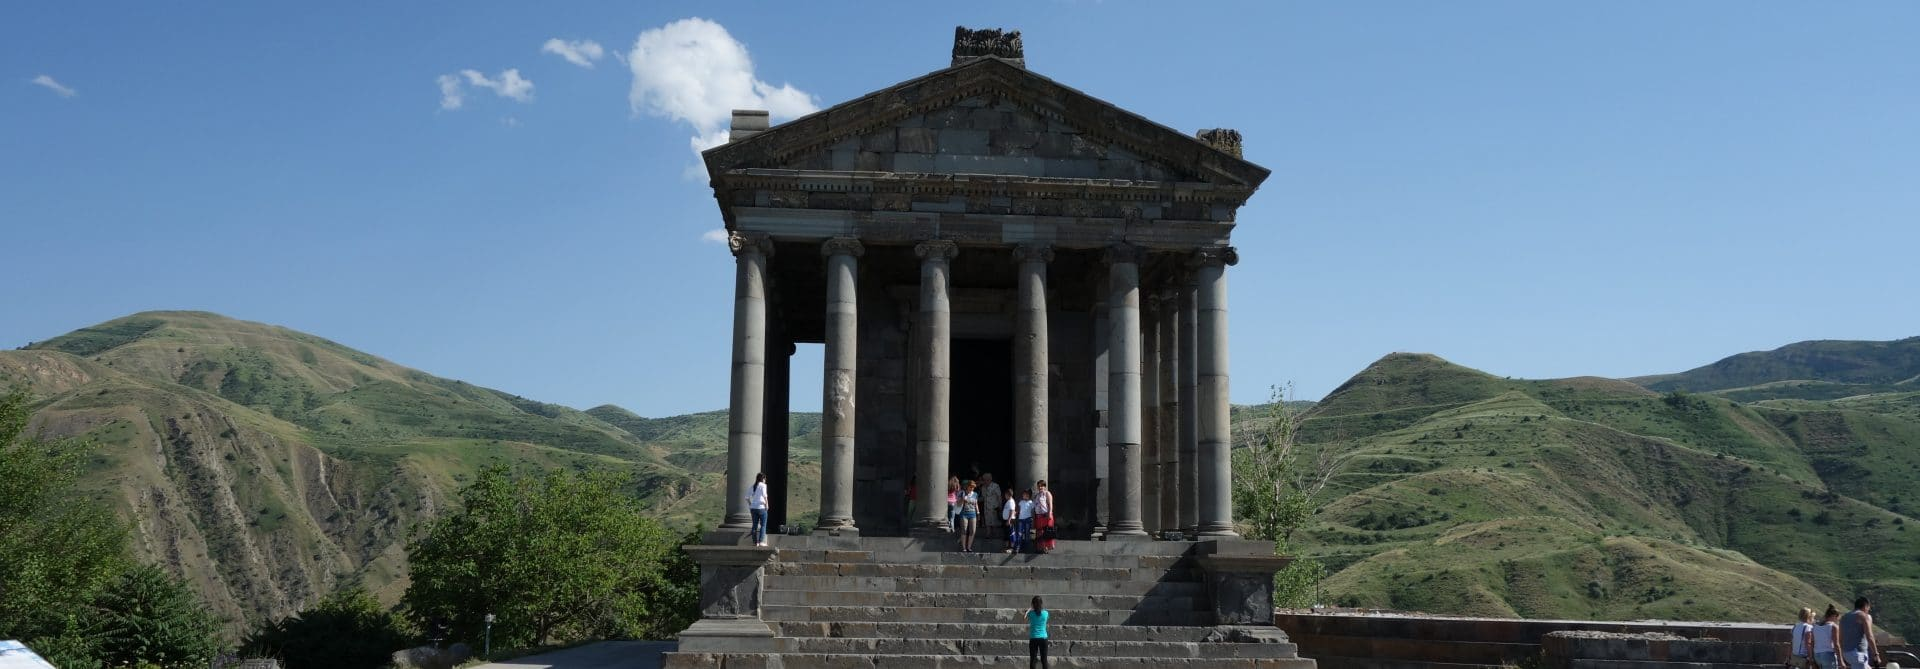 Temple at Garni, Armenia